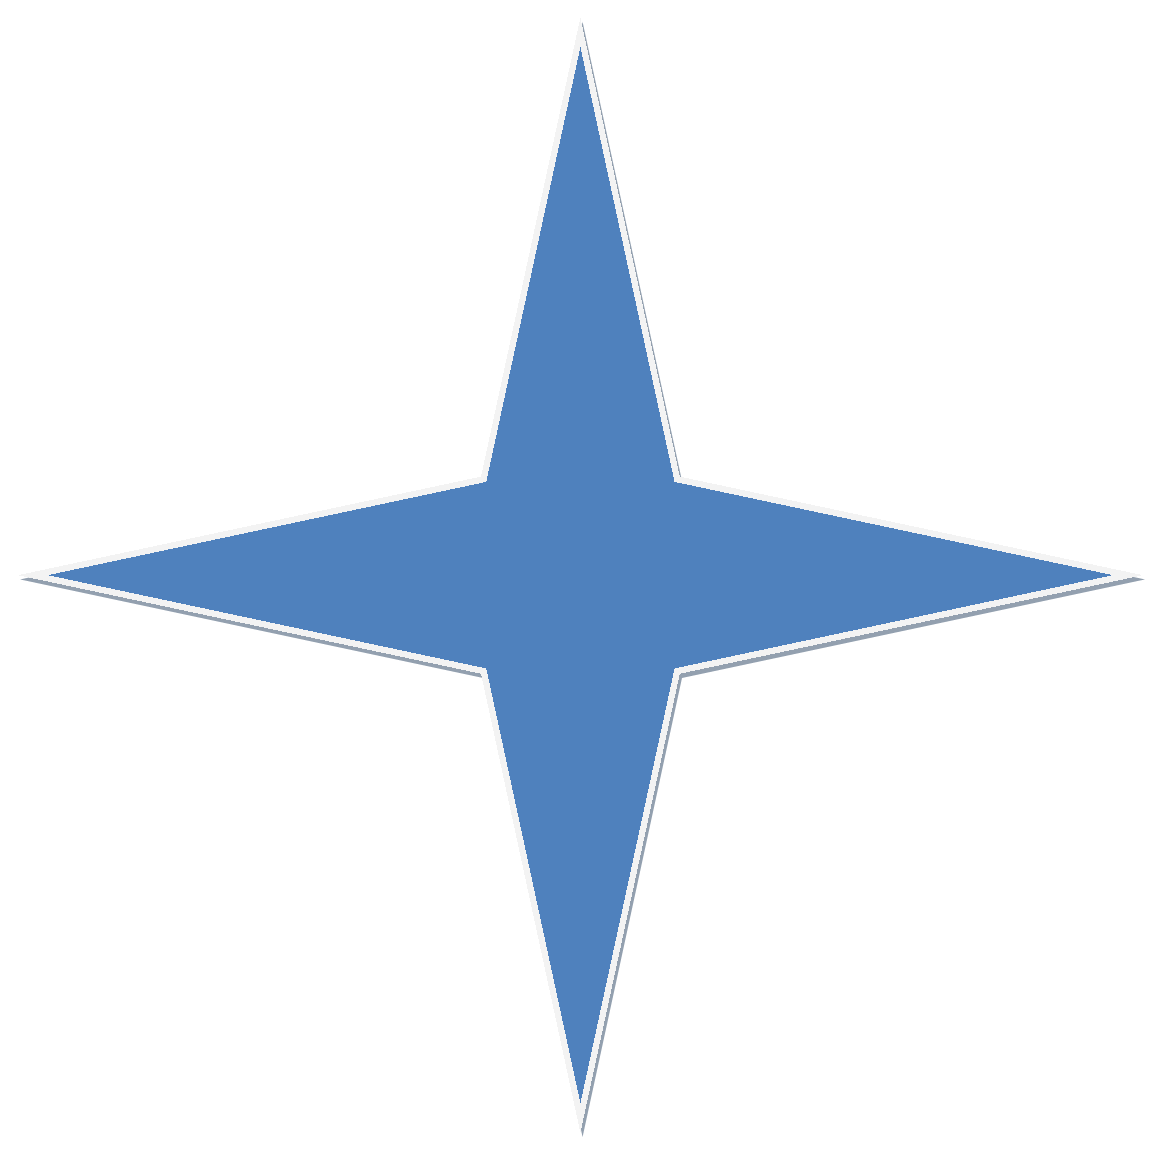 White 4 point star clipart vector free 51 png 5 » PNG Image vector free